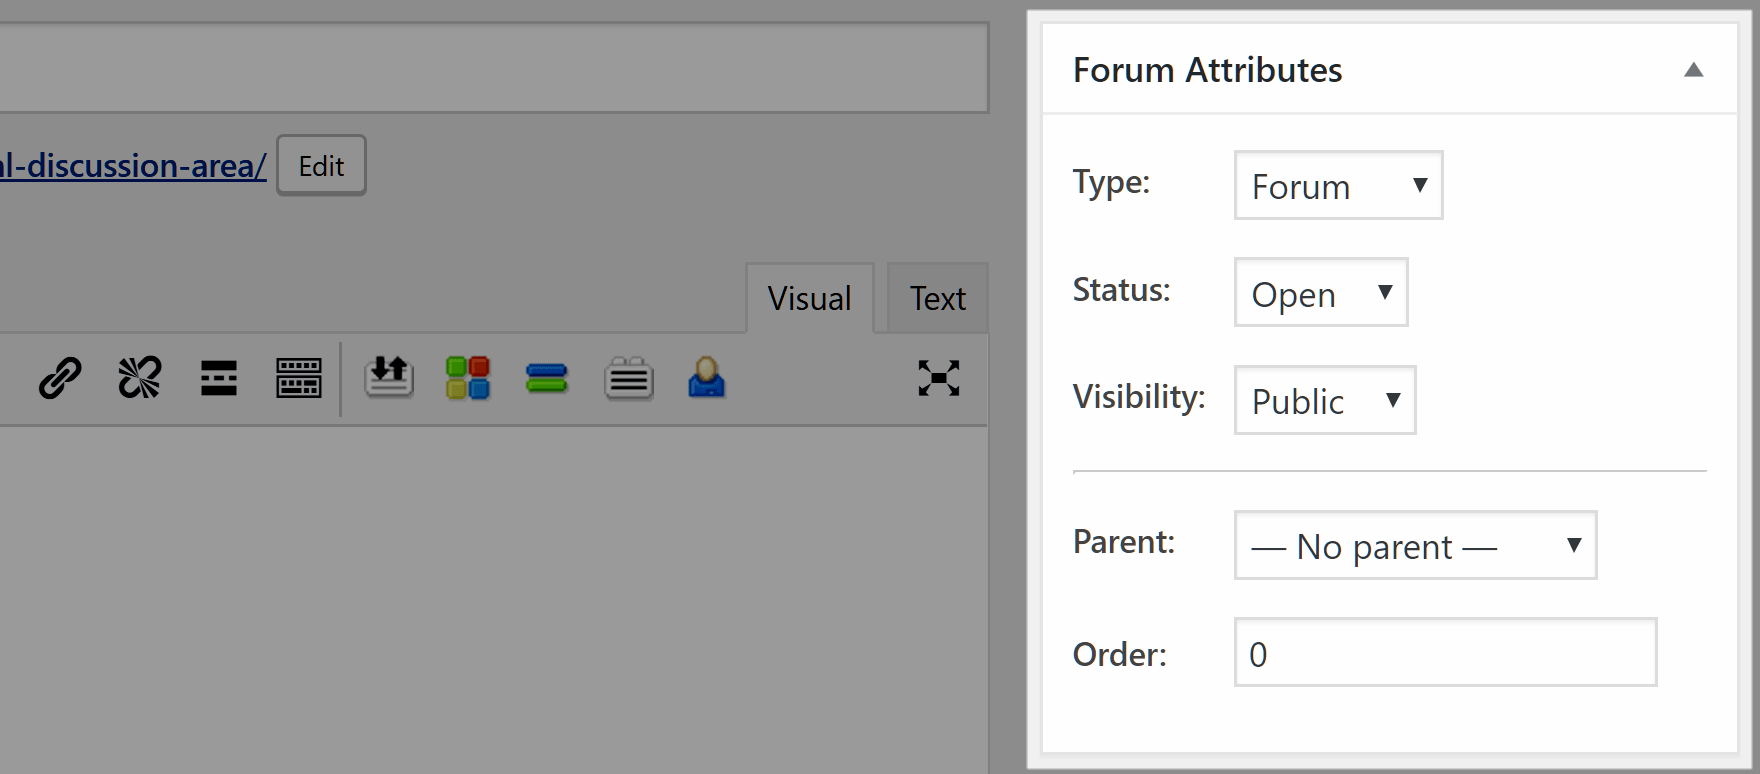 Set the forum attributes